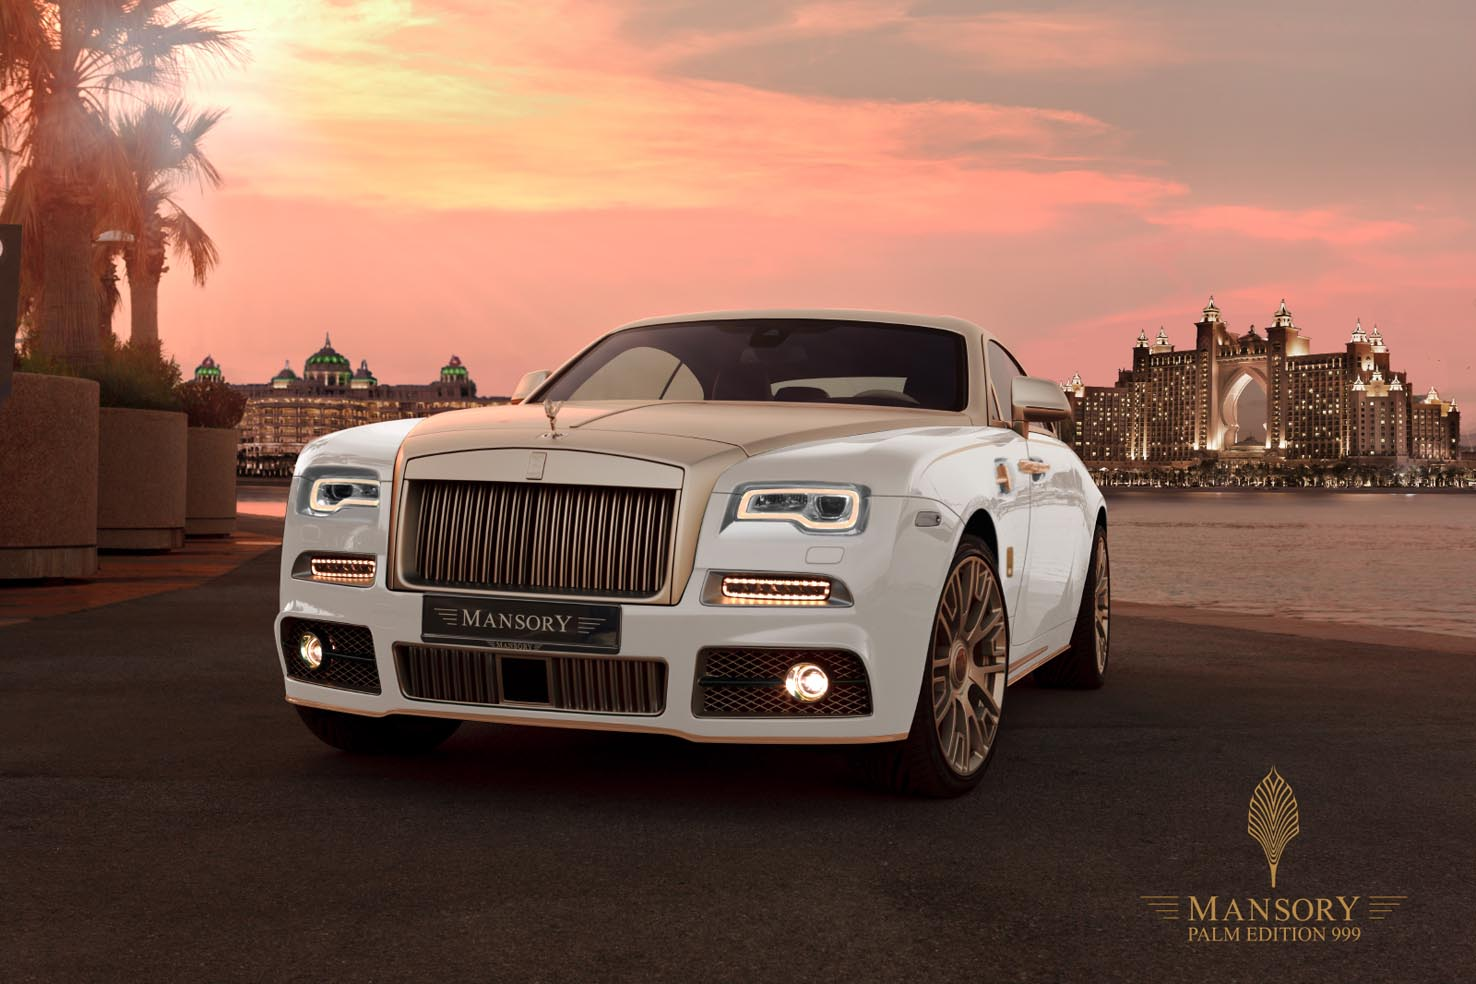 This Mansory Rolls-Royce Wraith Palm Edition 999 is Pure Gold Luxury